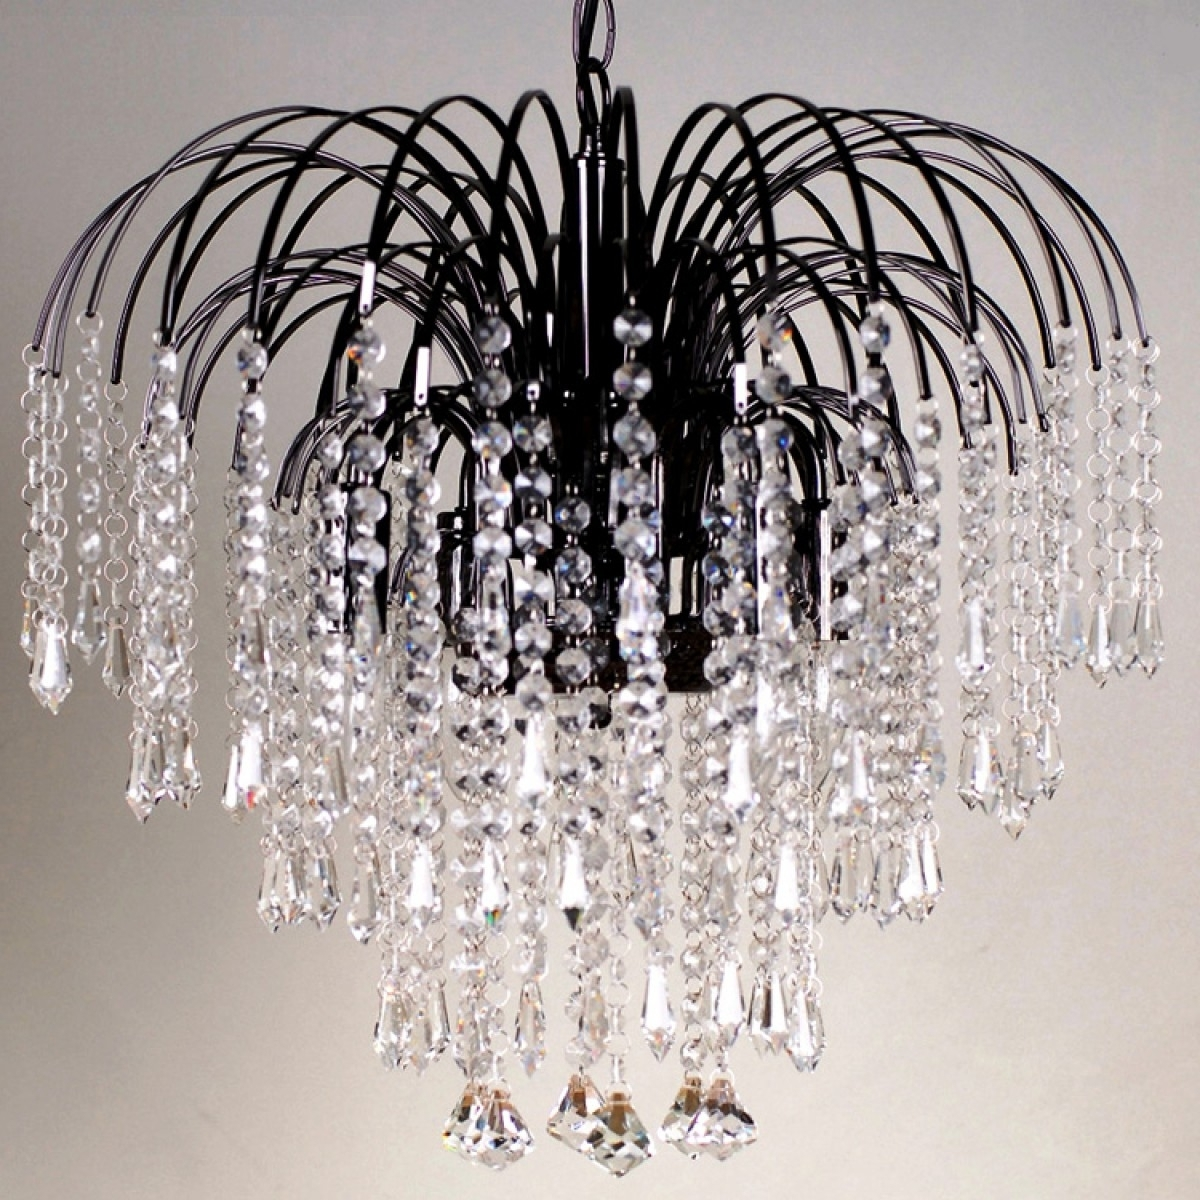 Waterfall Crystal Chandelier Pertaining To Popular Four Light Black Crystal Chandelier (View 13 of 15)